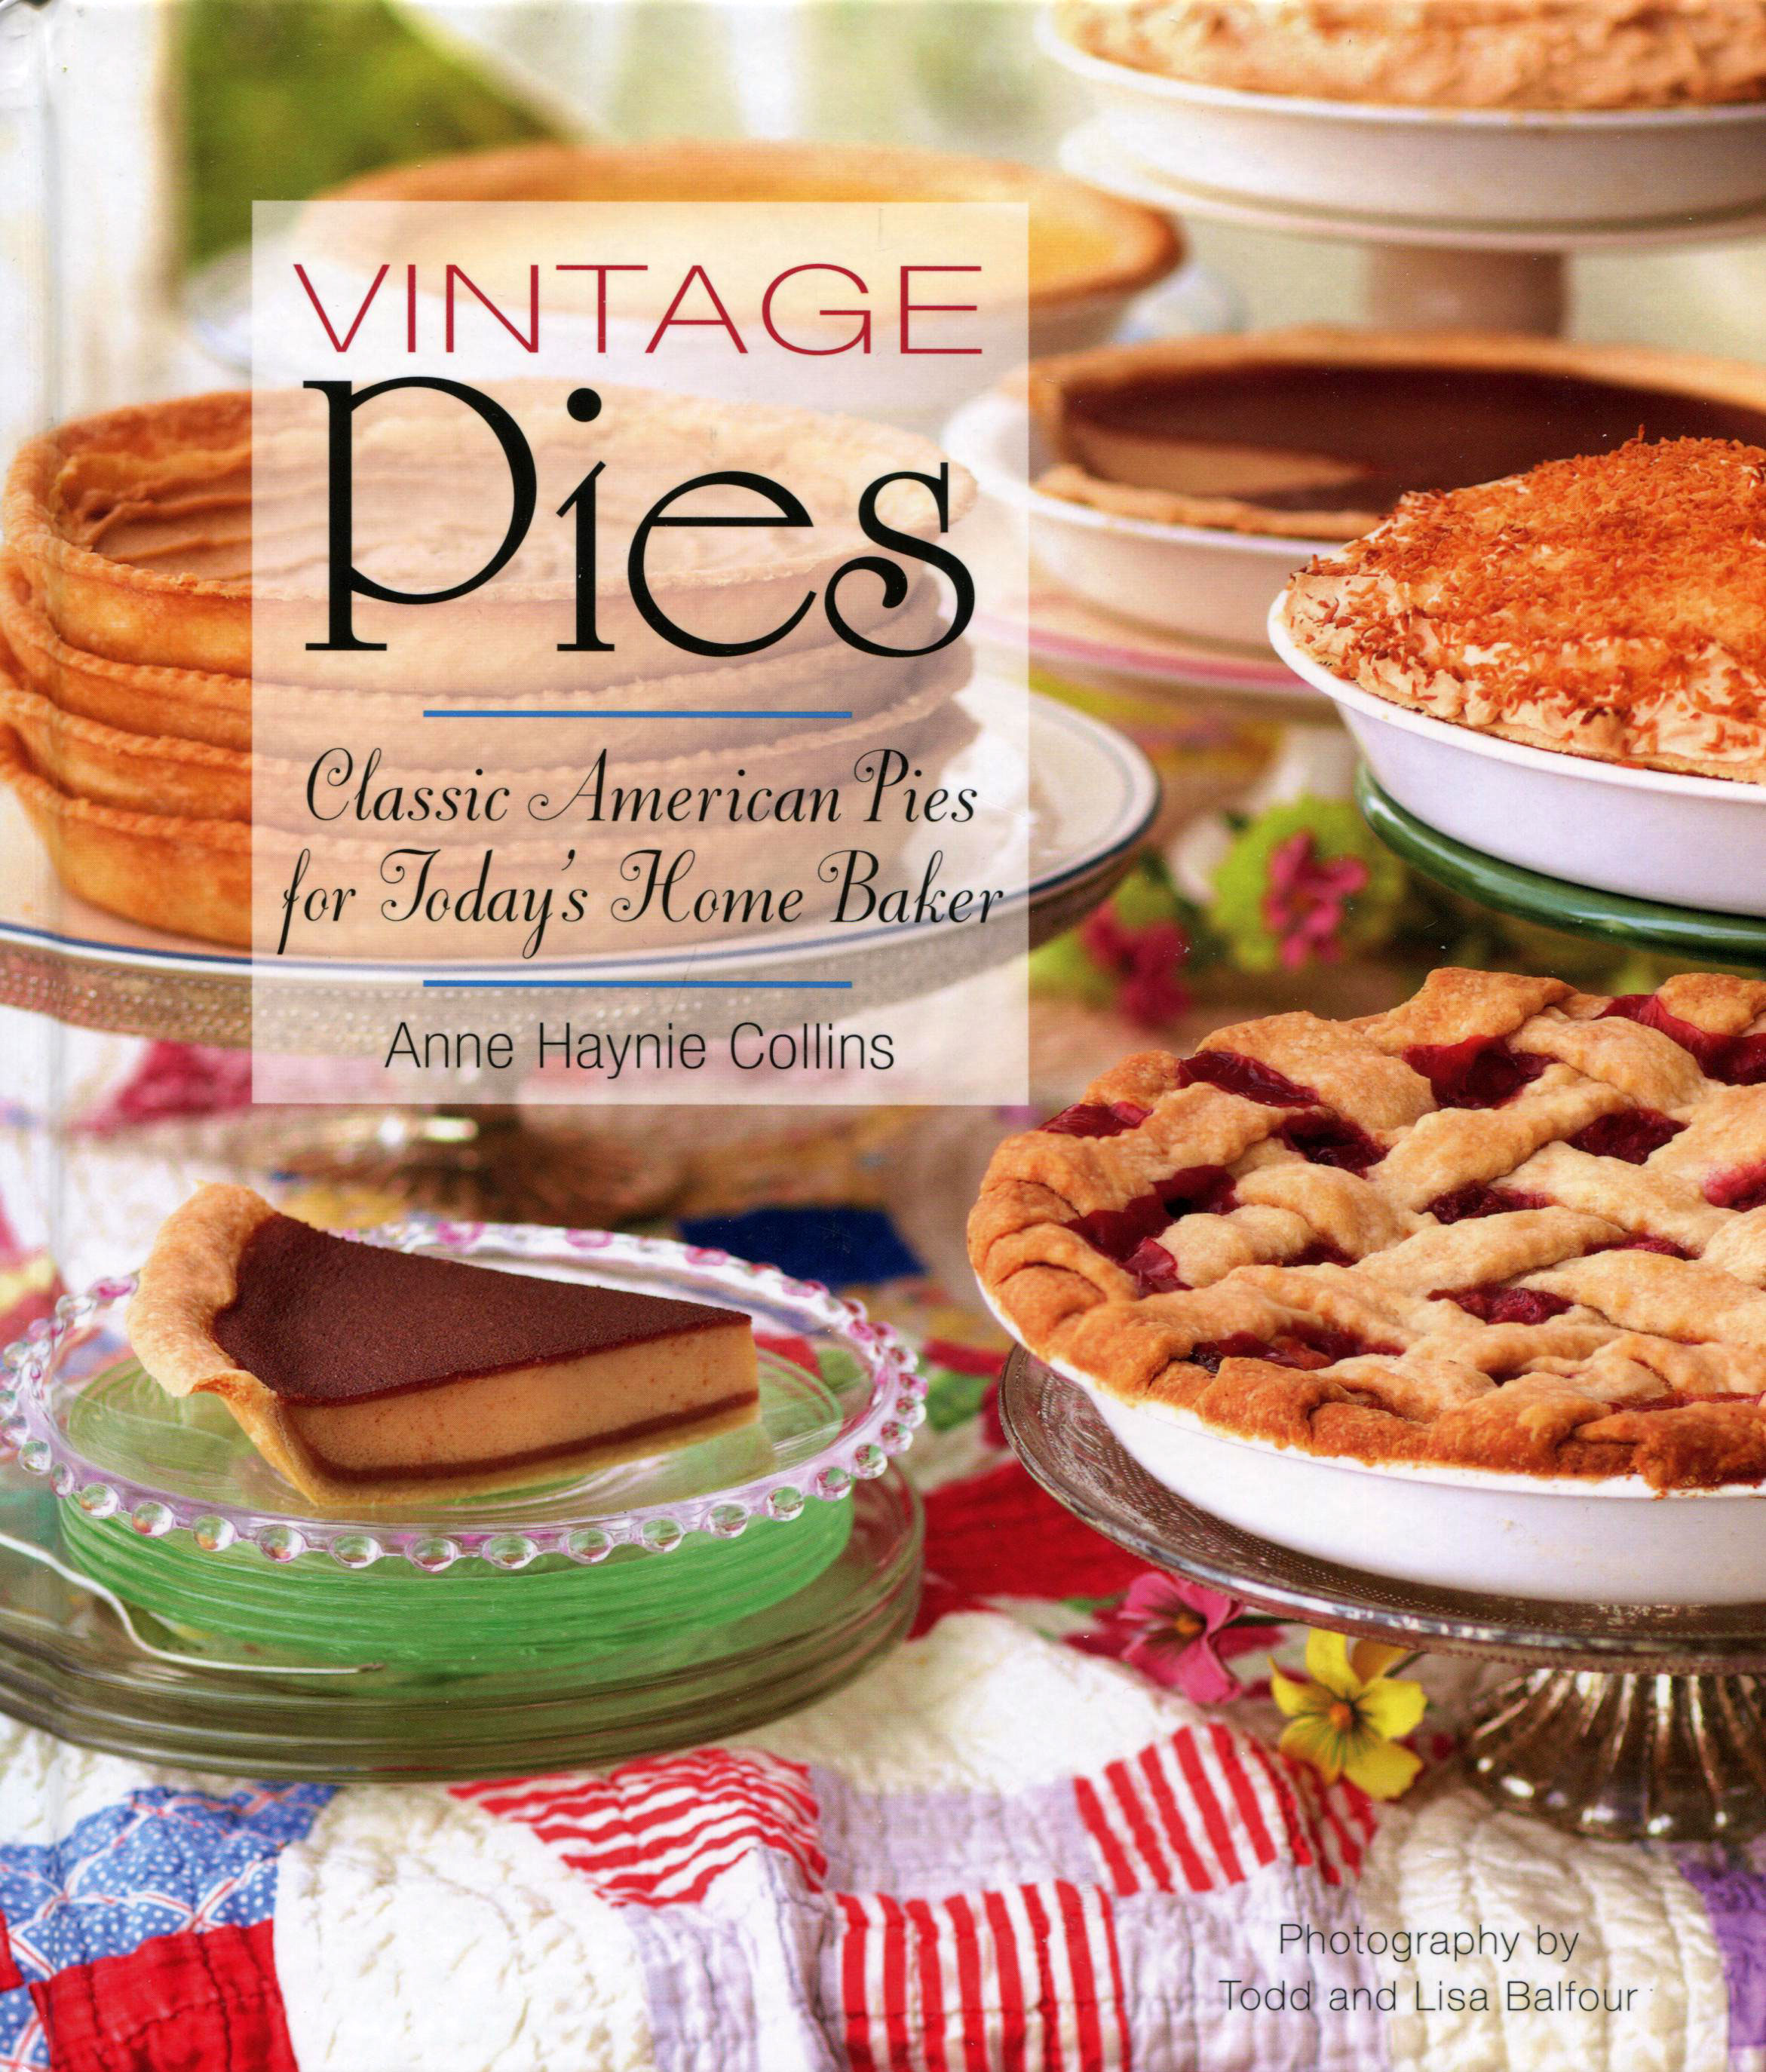 TBT Cookbook Review: Vintage Pies by Anne Haynie Collins